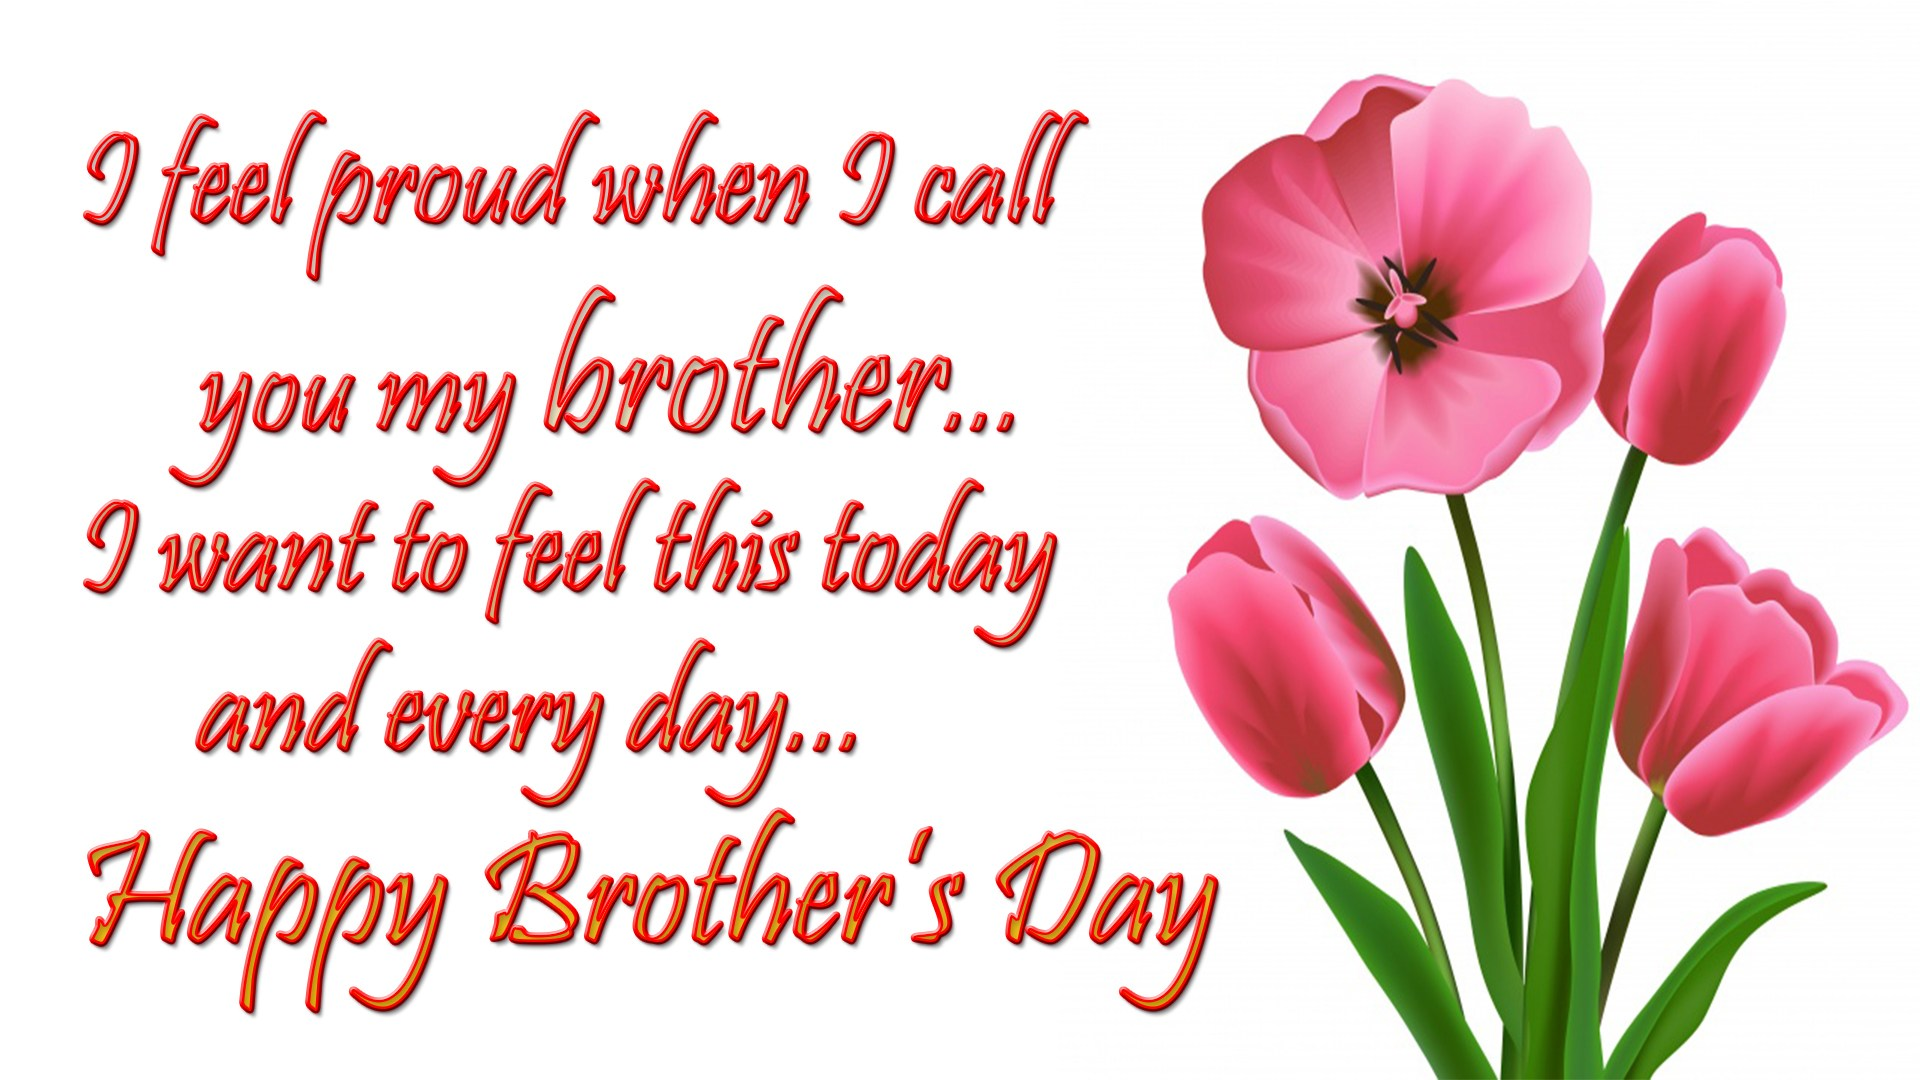 Happy Brothers Day Wishes Greetings Messages Images 1920x1080